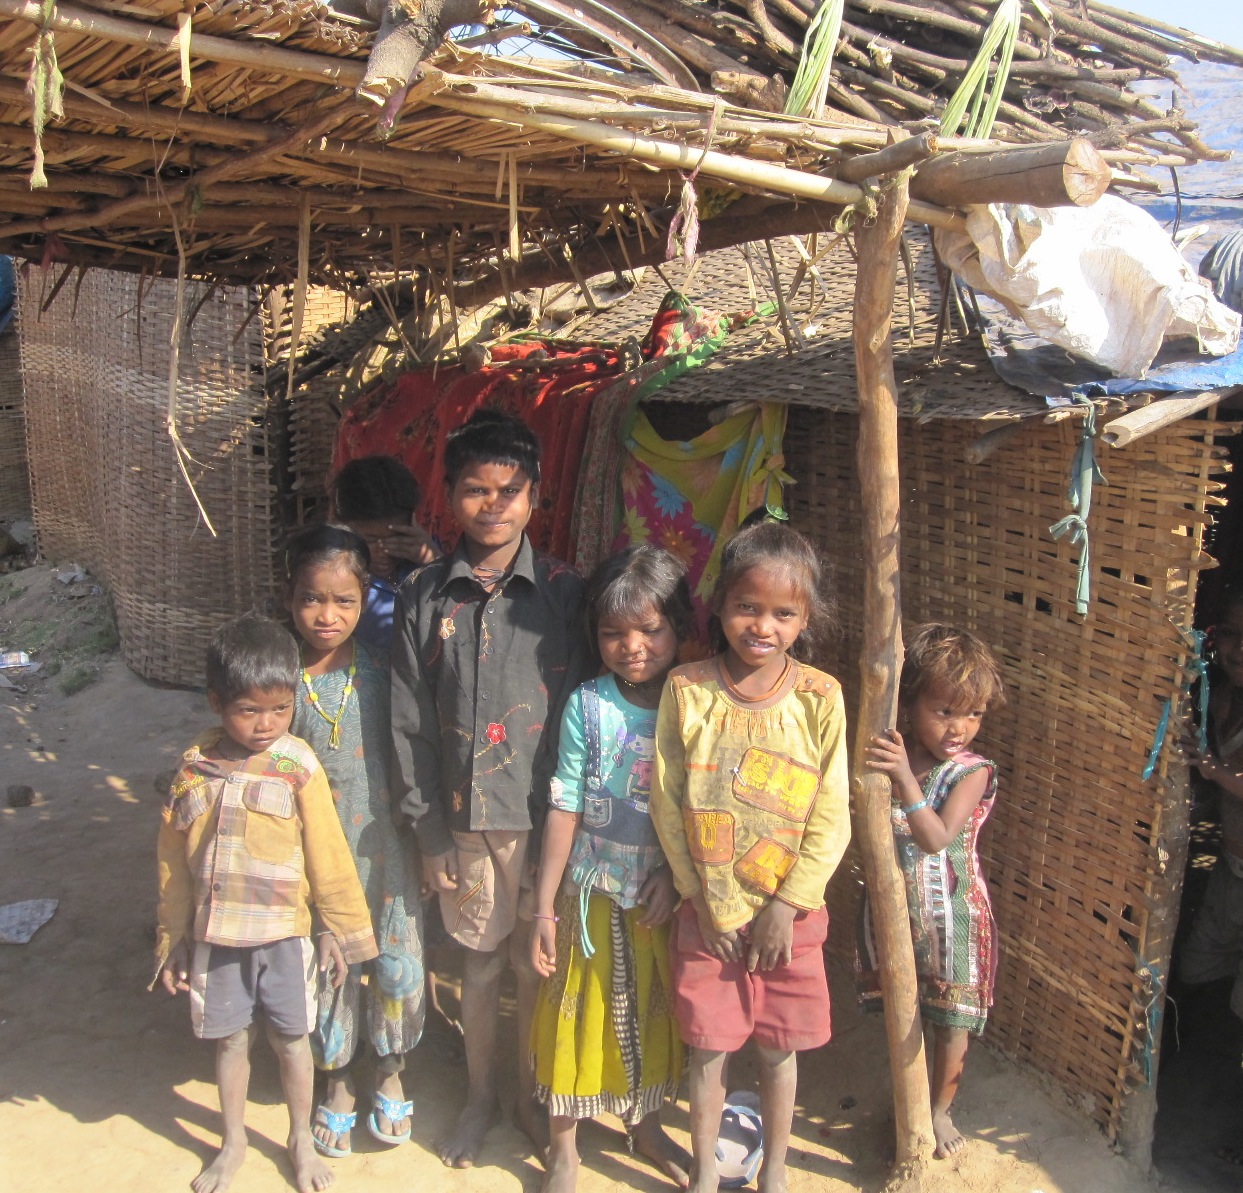 Dangi children in the camp